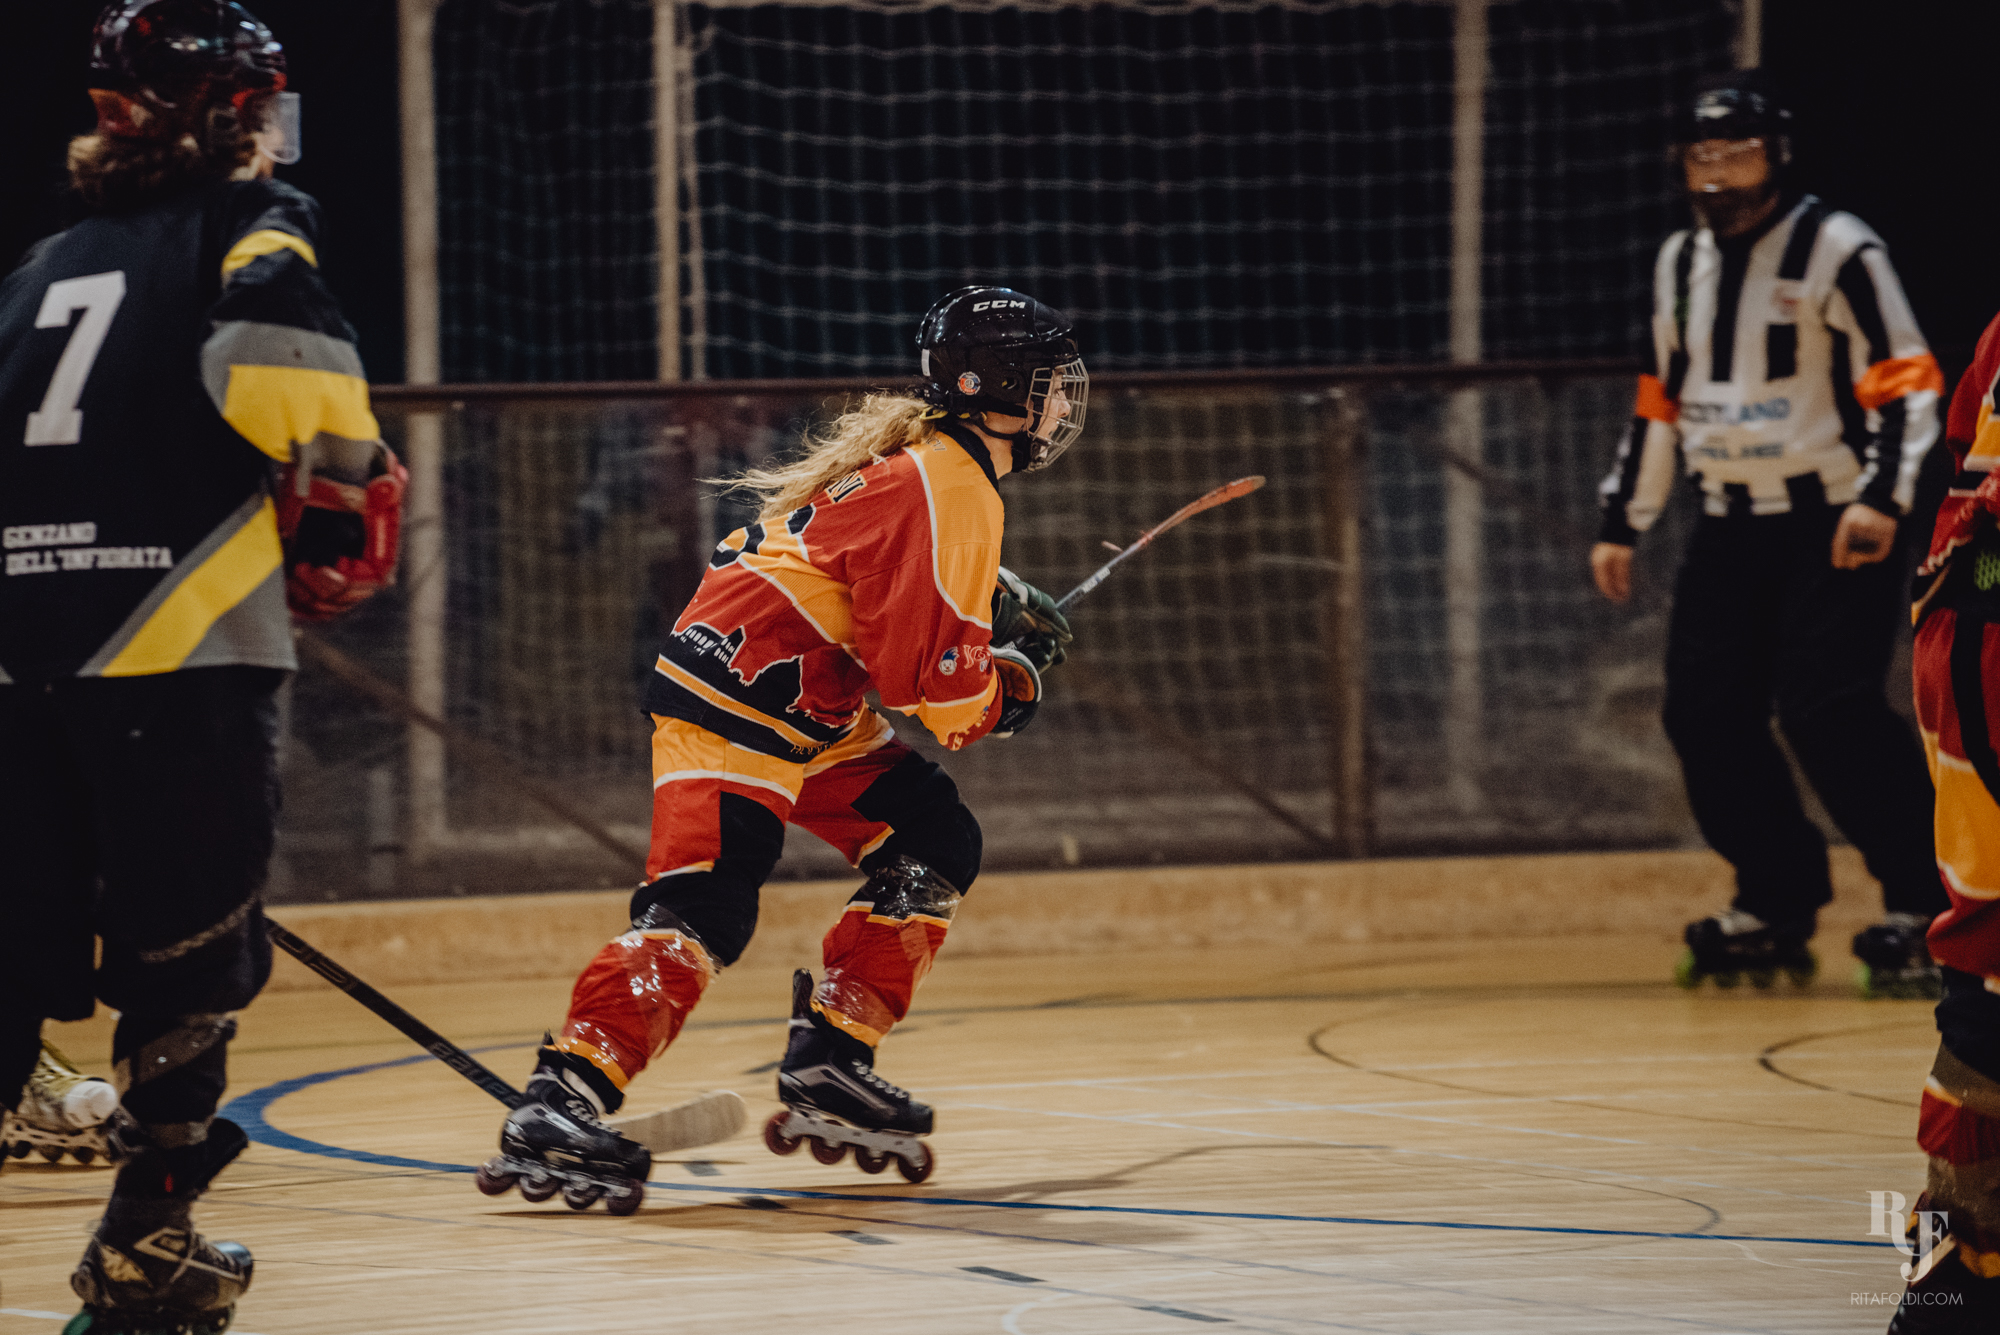 hockey roma, inline hockey roma, roma hockey, rome hockey, inline hockey rome, mammuth hockey, mammuth roma, hockey mammuth, sports photography, rita foldi photography